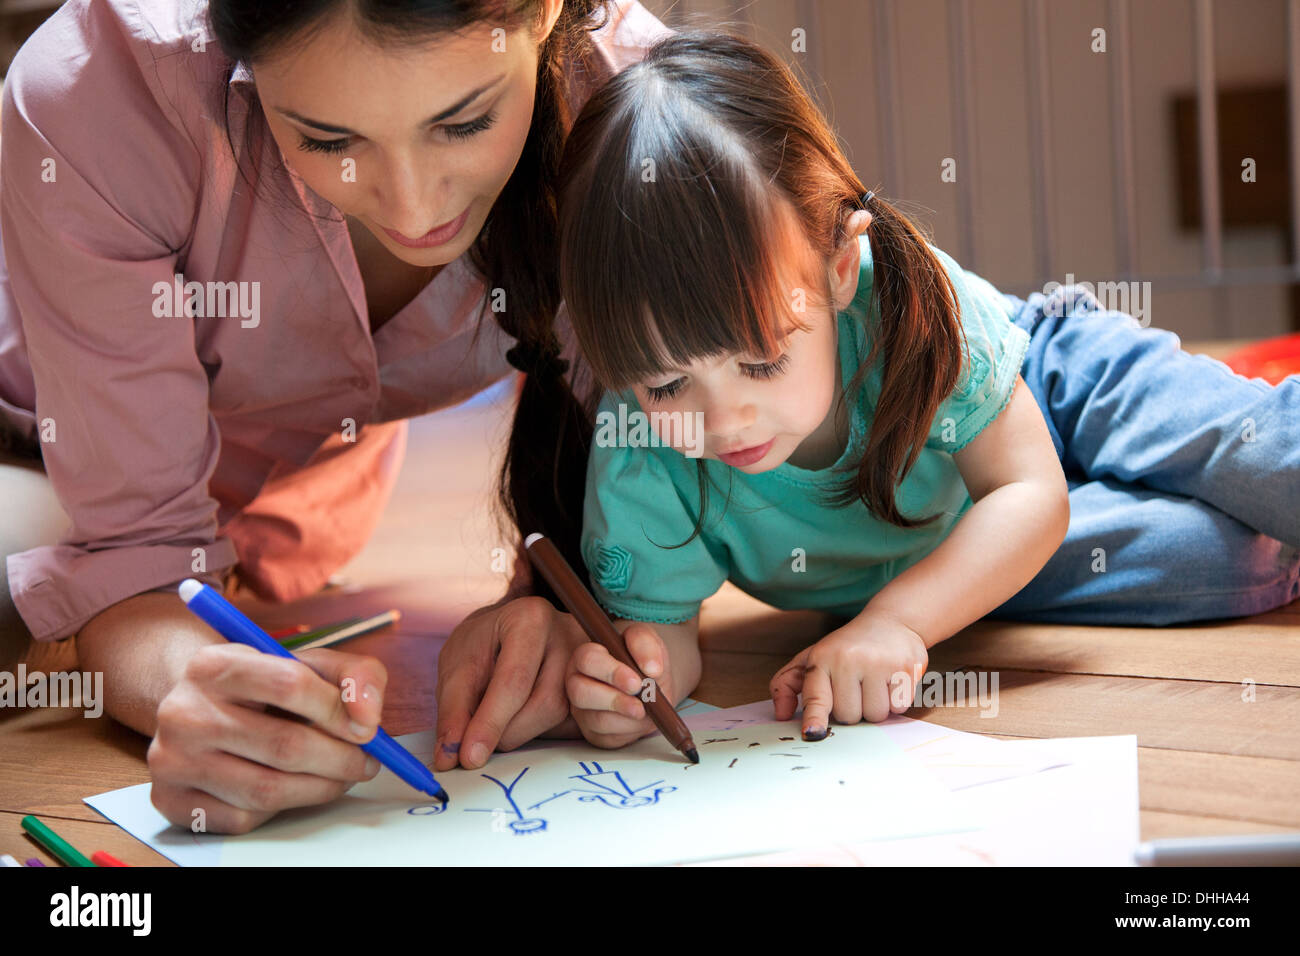 Mother and daughter lying on floor drawing - Stock Image